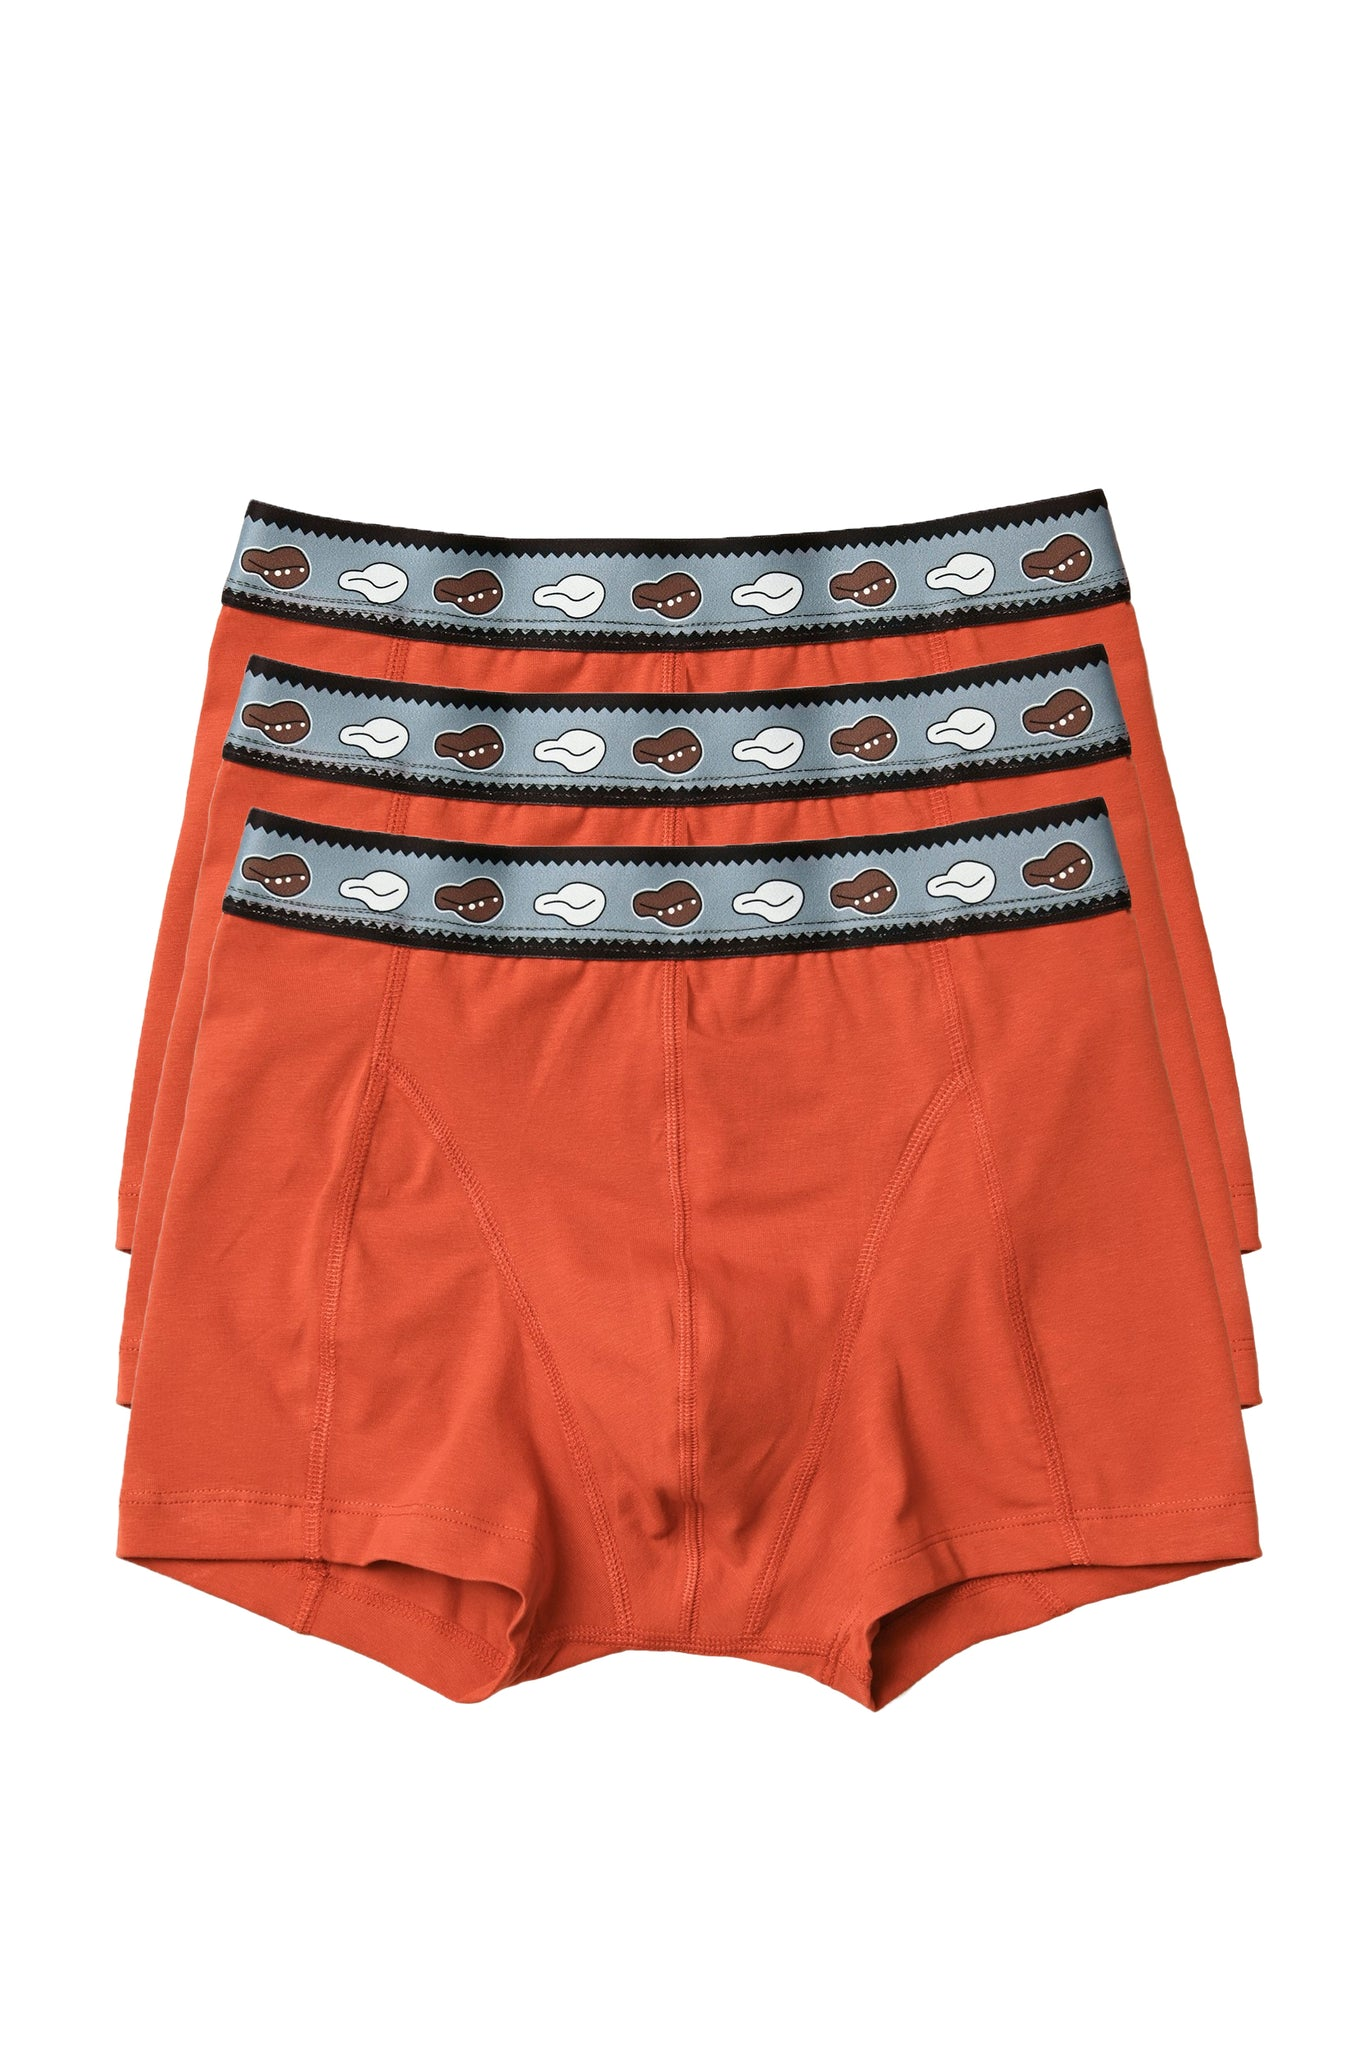 Boxer briefs with printed waistband - 3-pack